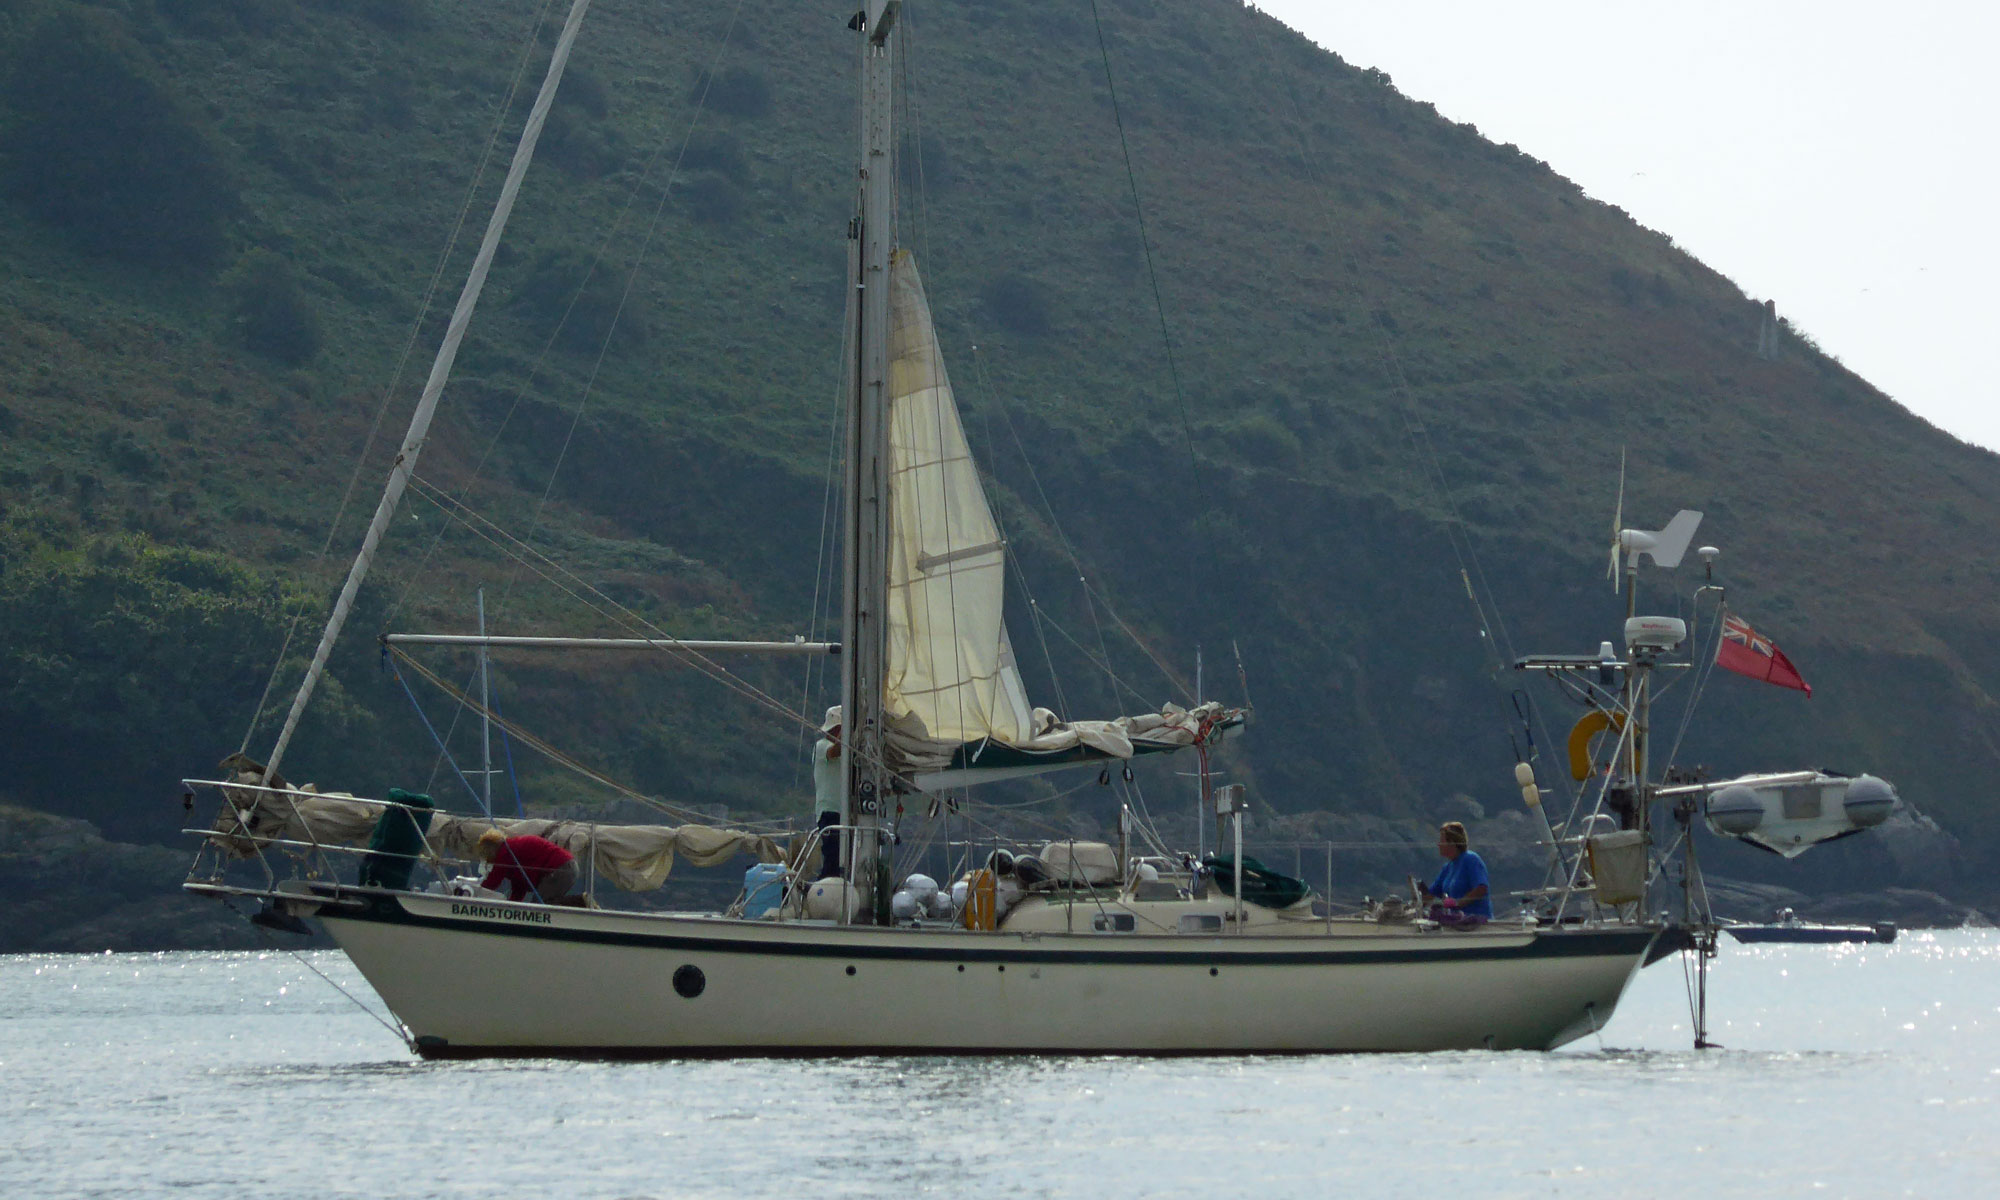 A Tradewind 35 heavy-displacement cruising boat